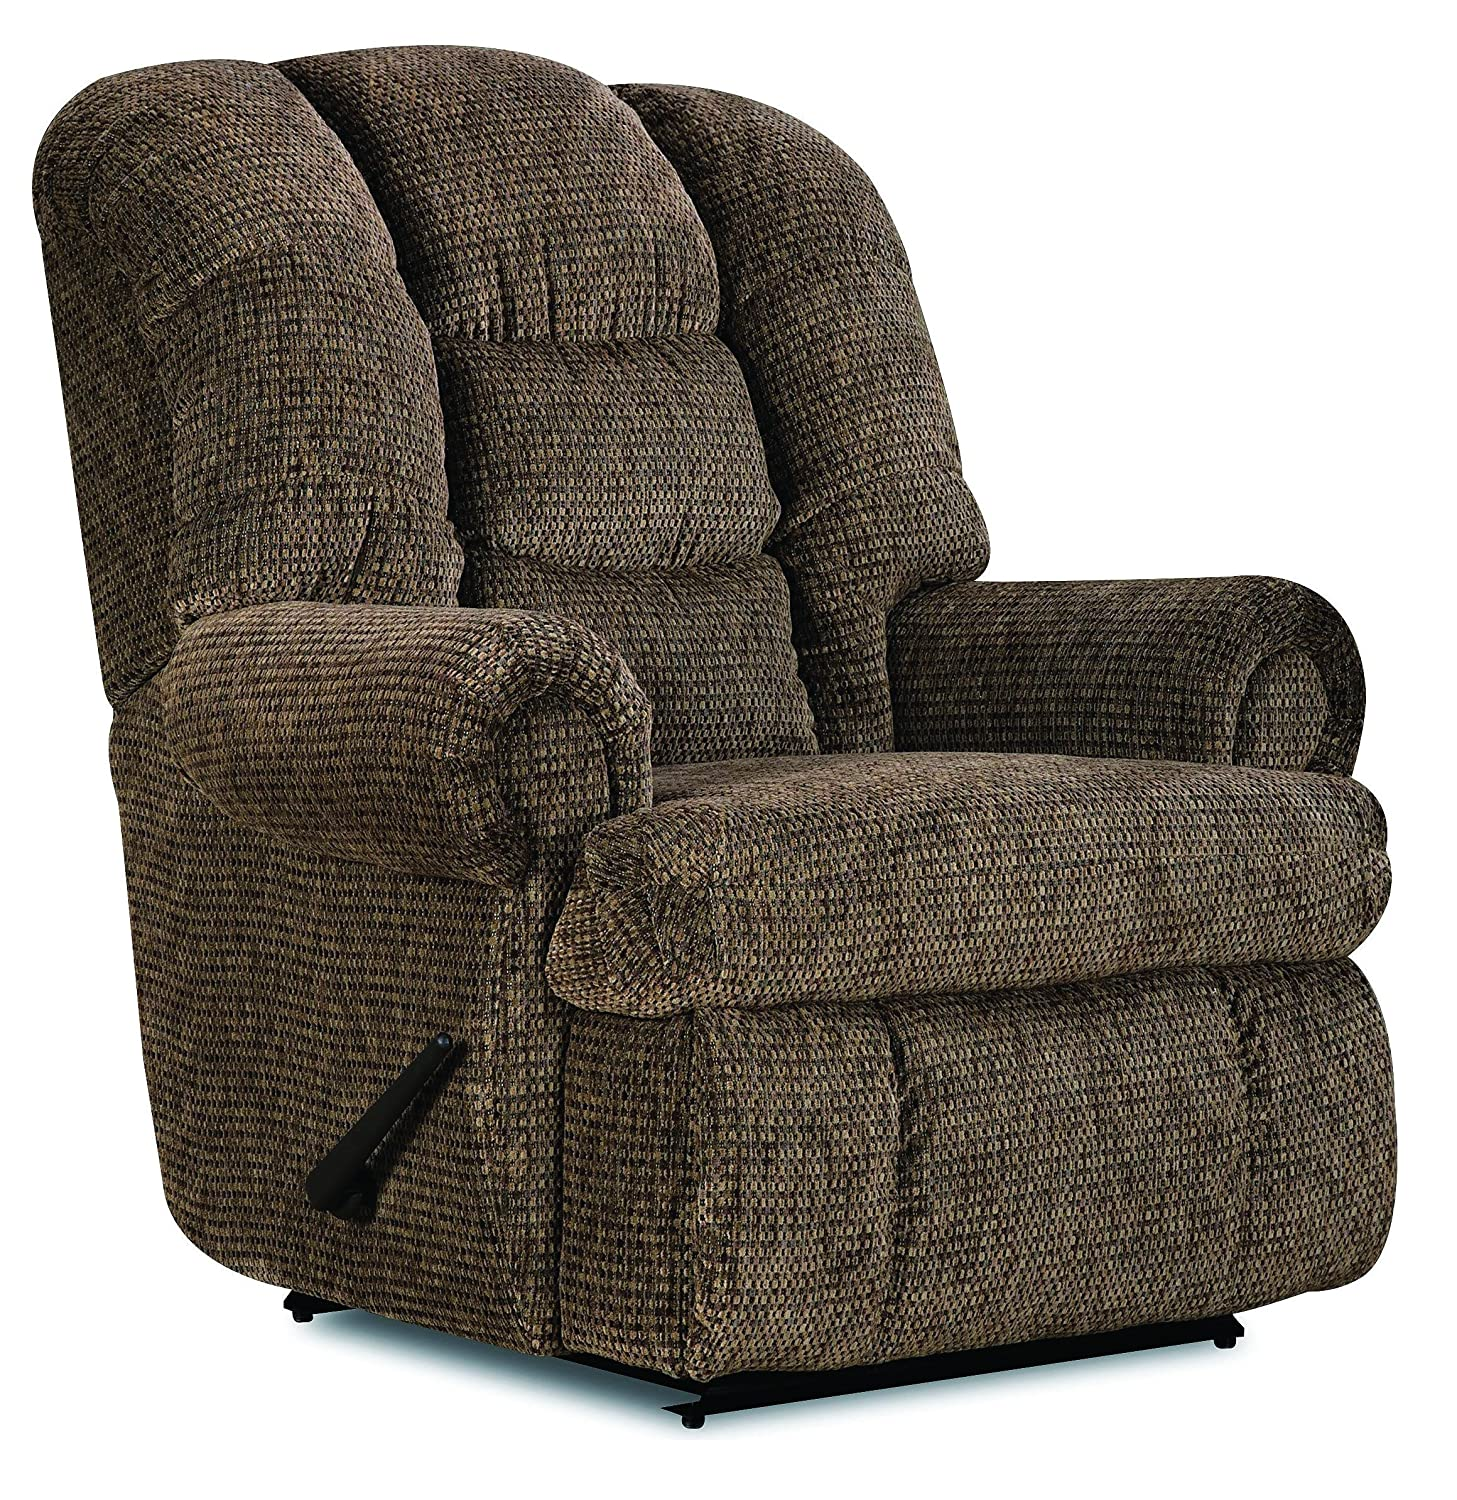 Superb Amazon.com: Lane Furniture Stallion Recliner, Praline: Kitchen U0026 Dining